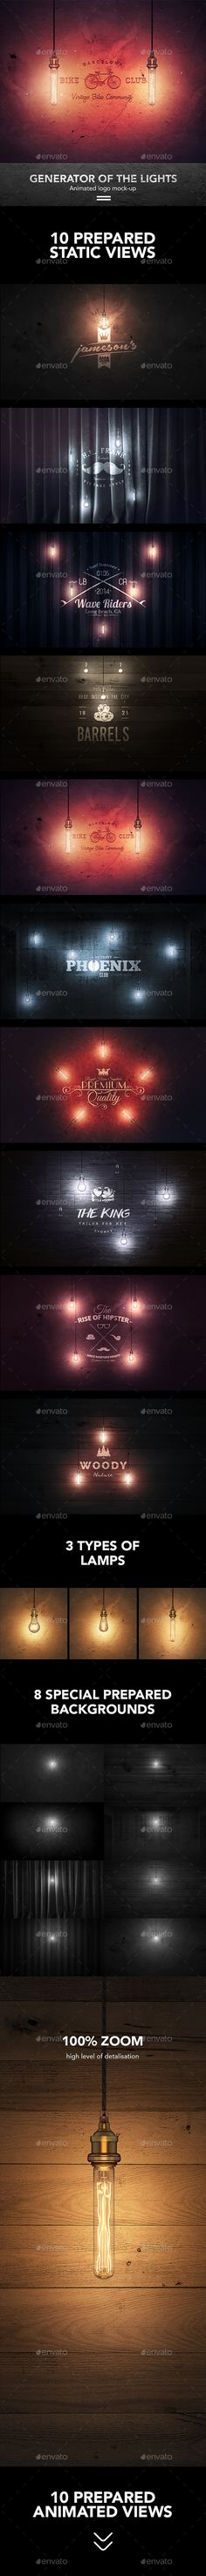 Creator Logo Mock-up / Lighting Edition. Download here: https://graphicriver.net/item/creator-logo-mockup-lighting-edition/17370055?ref=ksioks